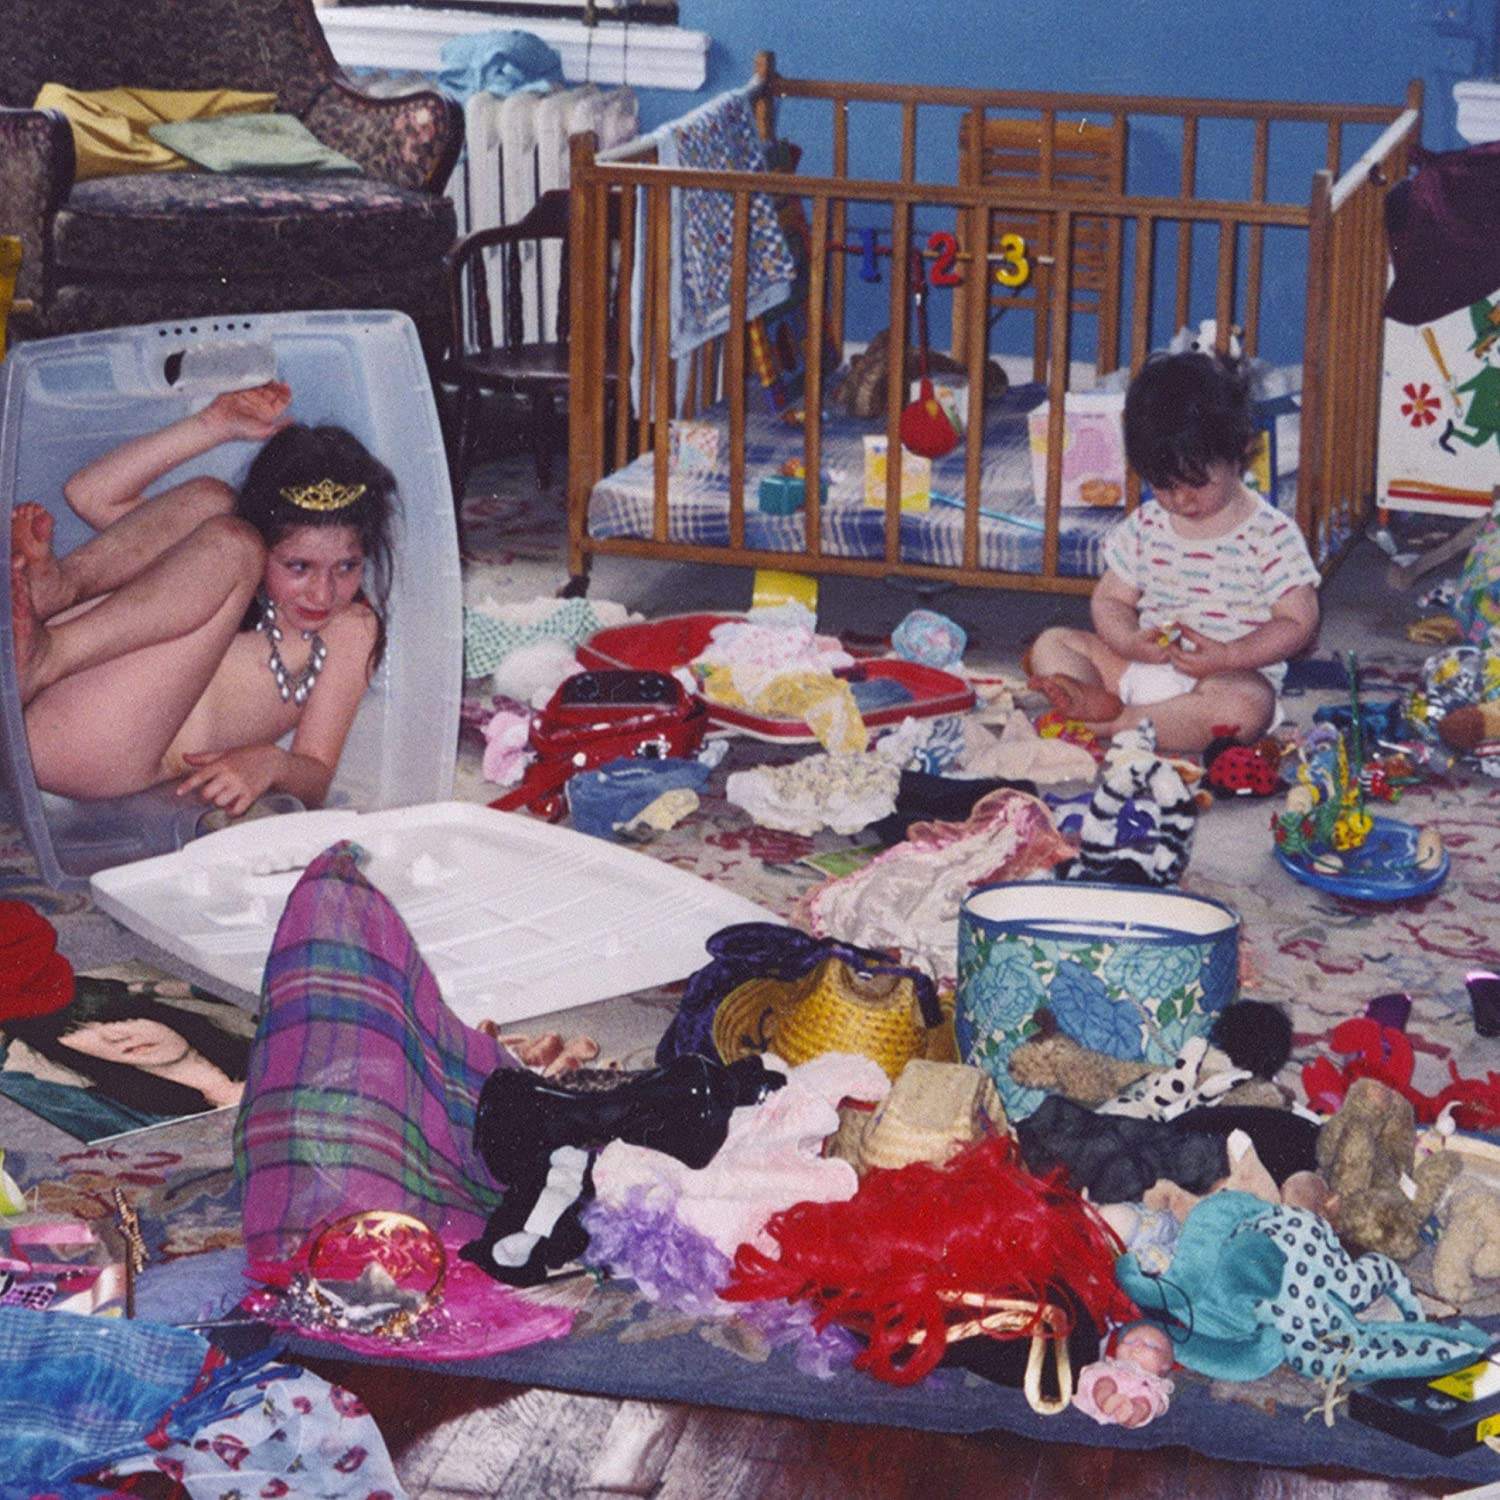 Buy Remind Me Tomorrow by Sharon Van Etten New or Used via Amazon